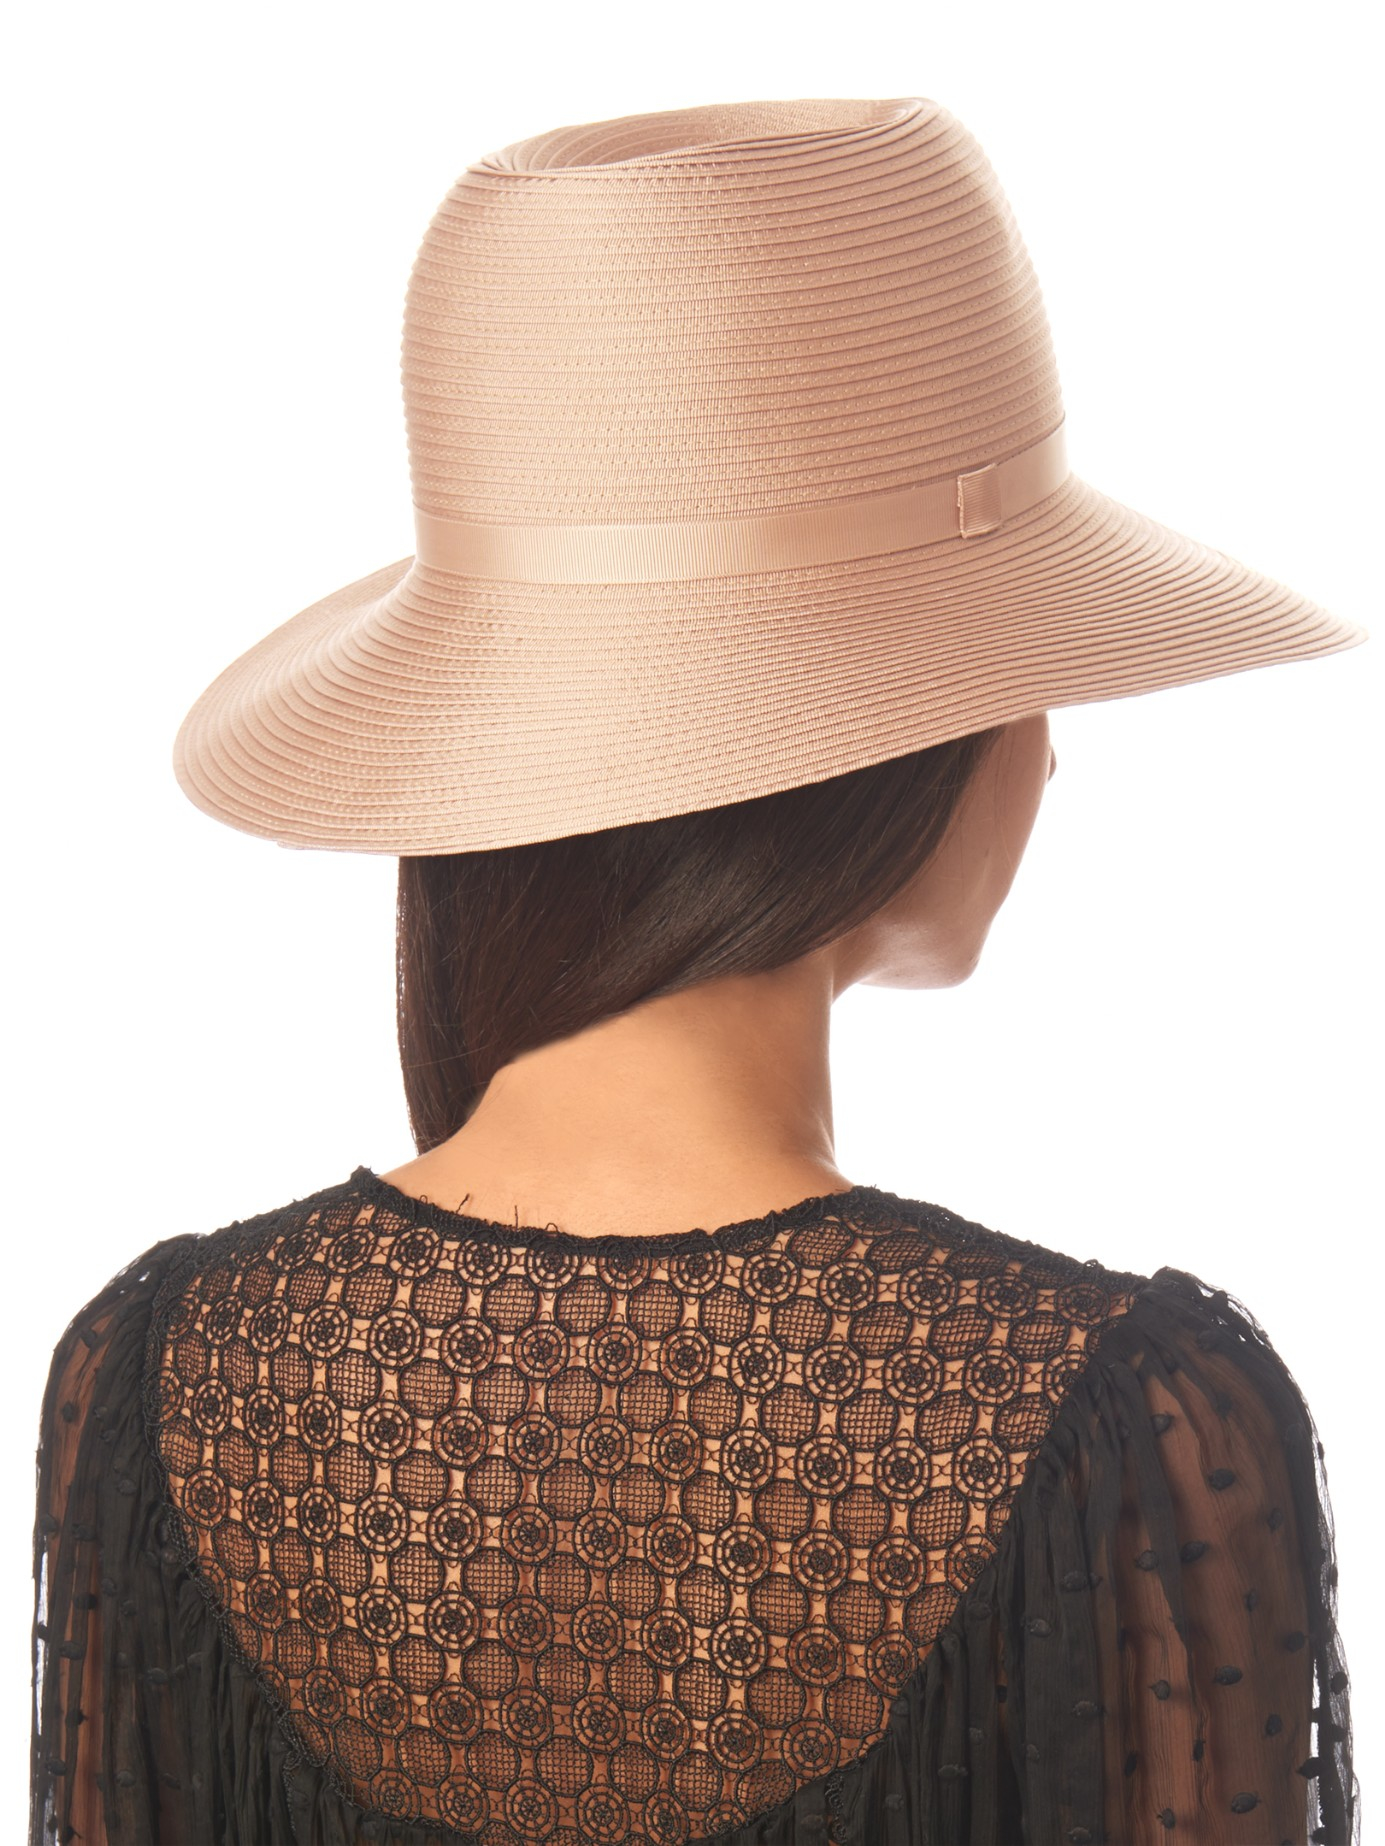 ACCESSORIES - Hats Gigi Burris Millinery DuyjIs